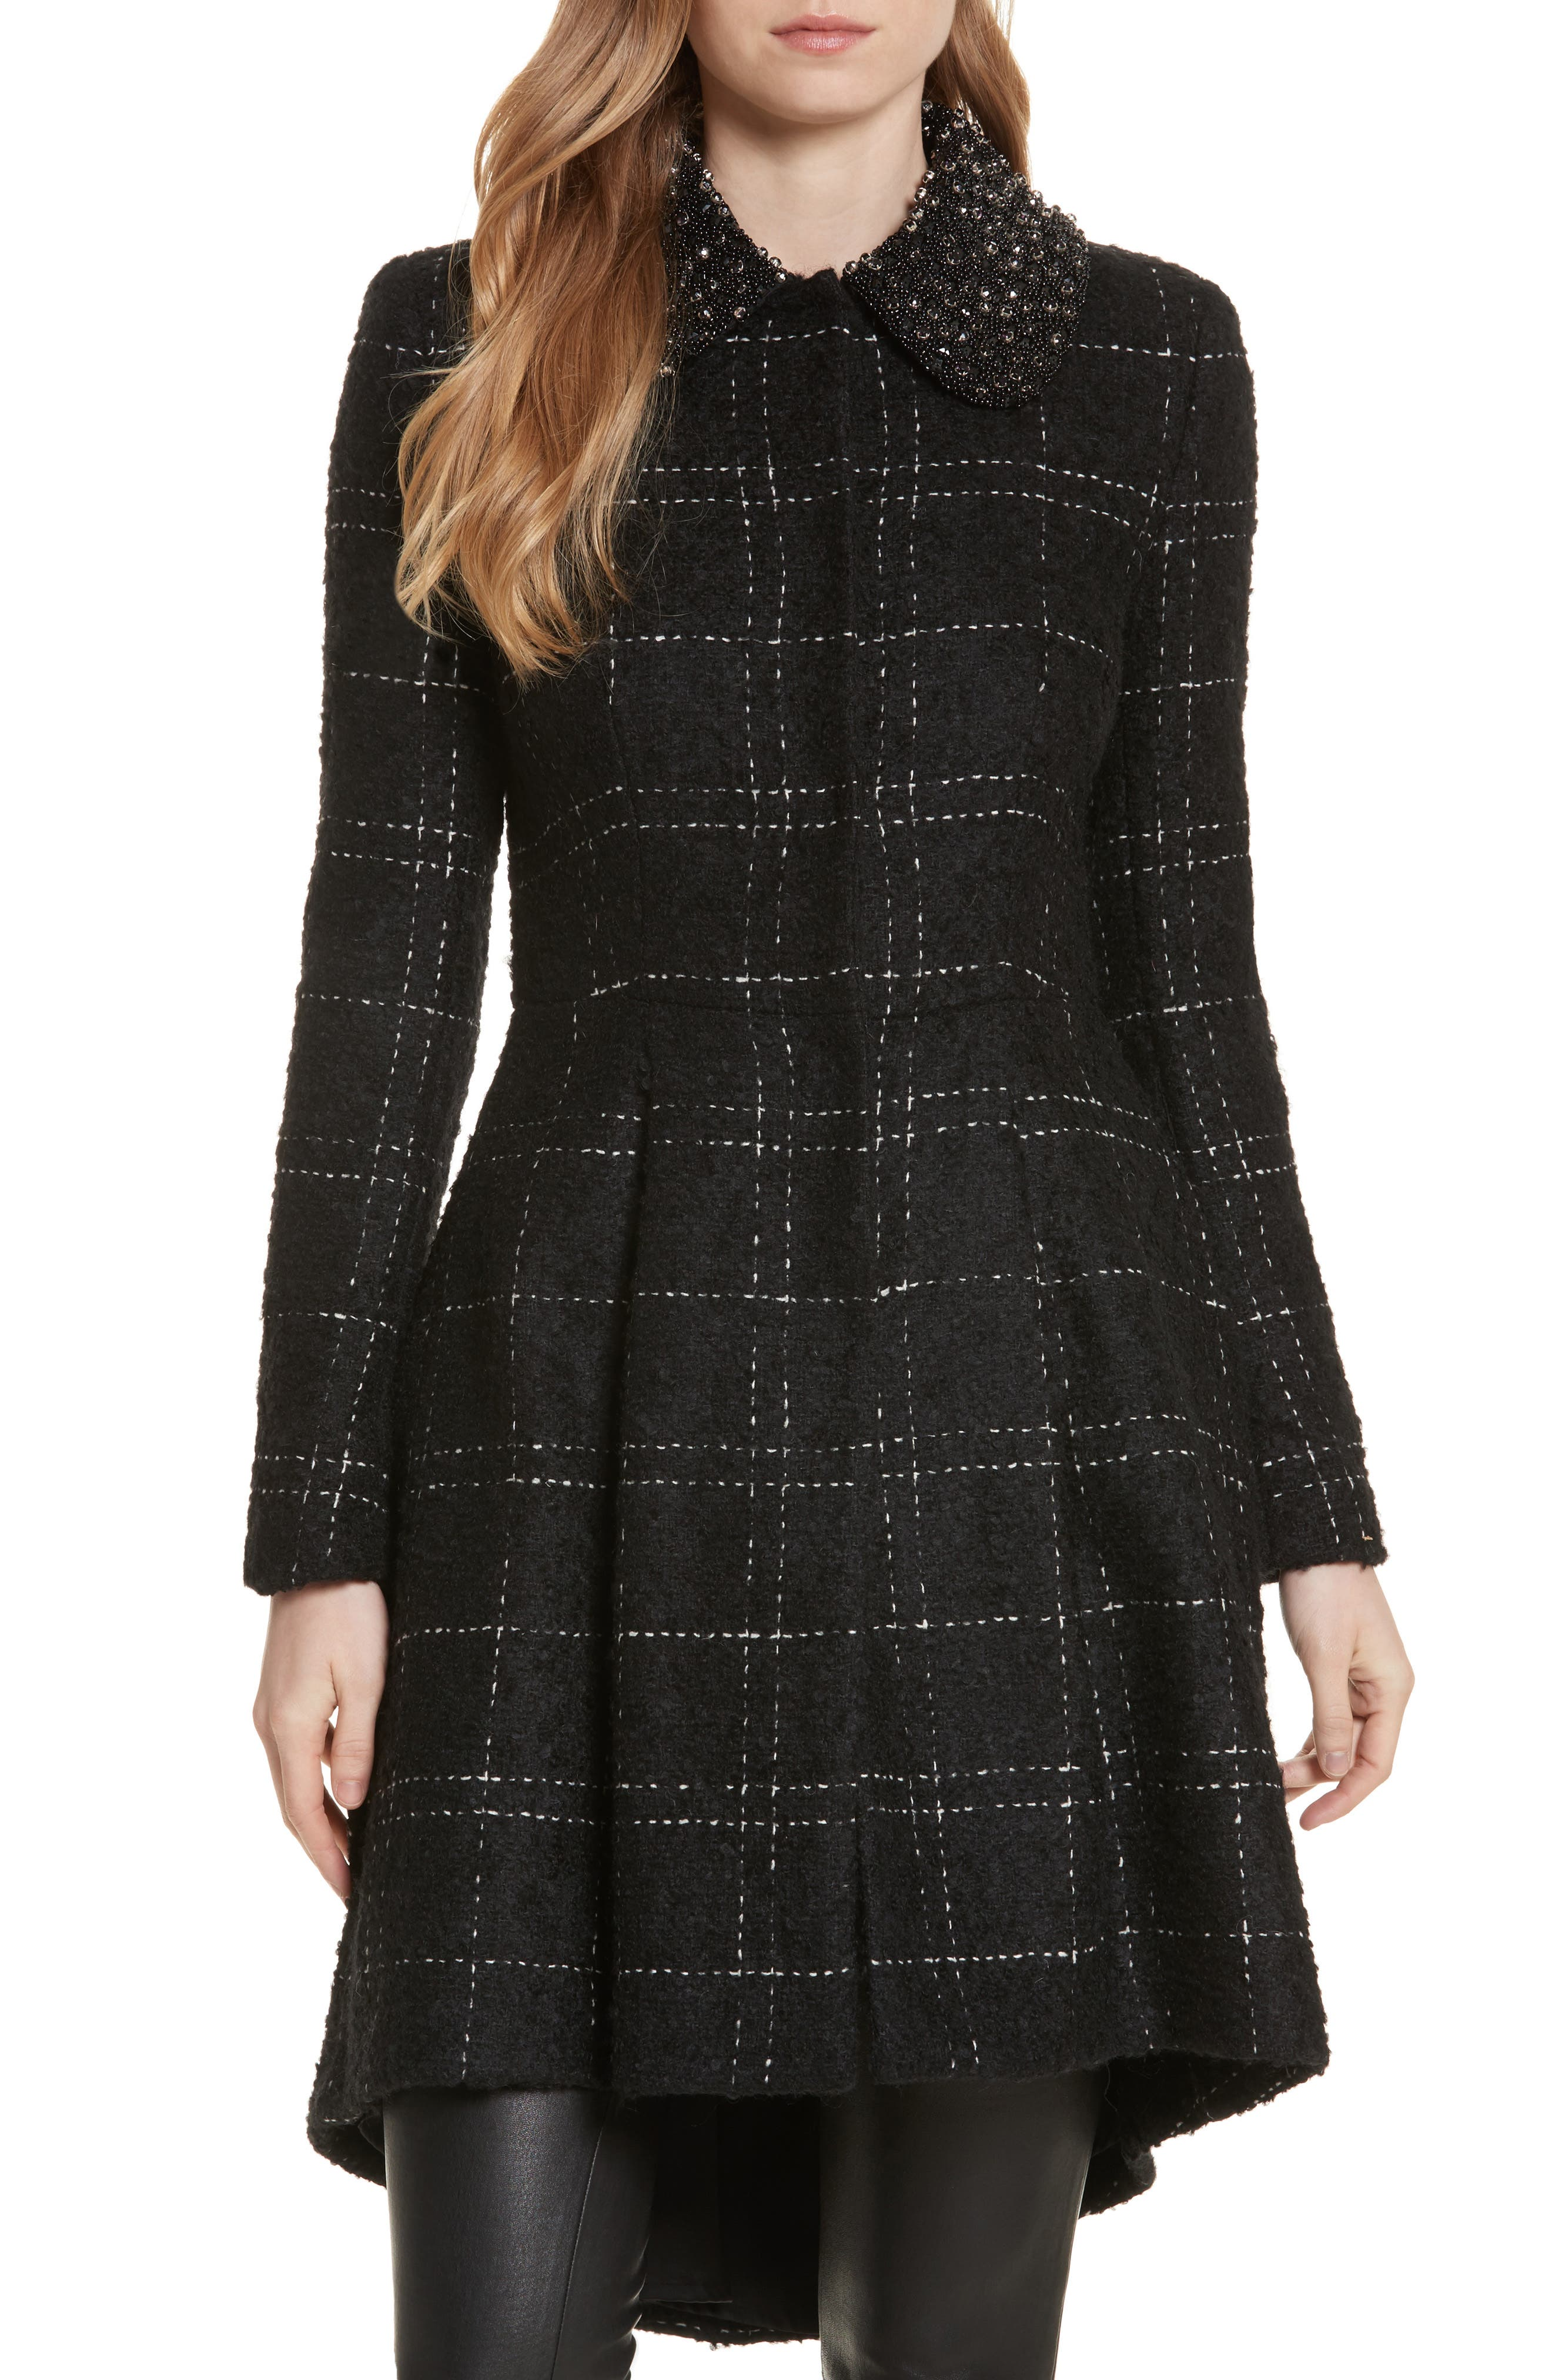 Alice + Olivia Marcia Embellished Peter Pan Collar Coat